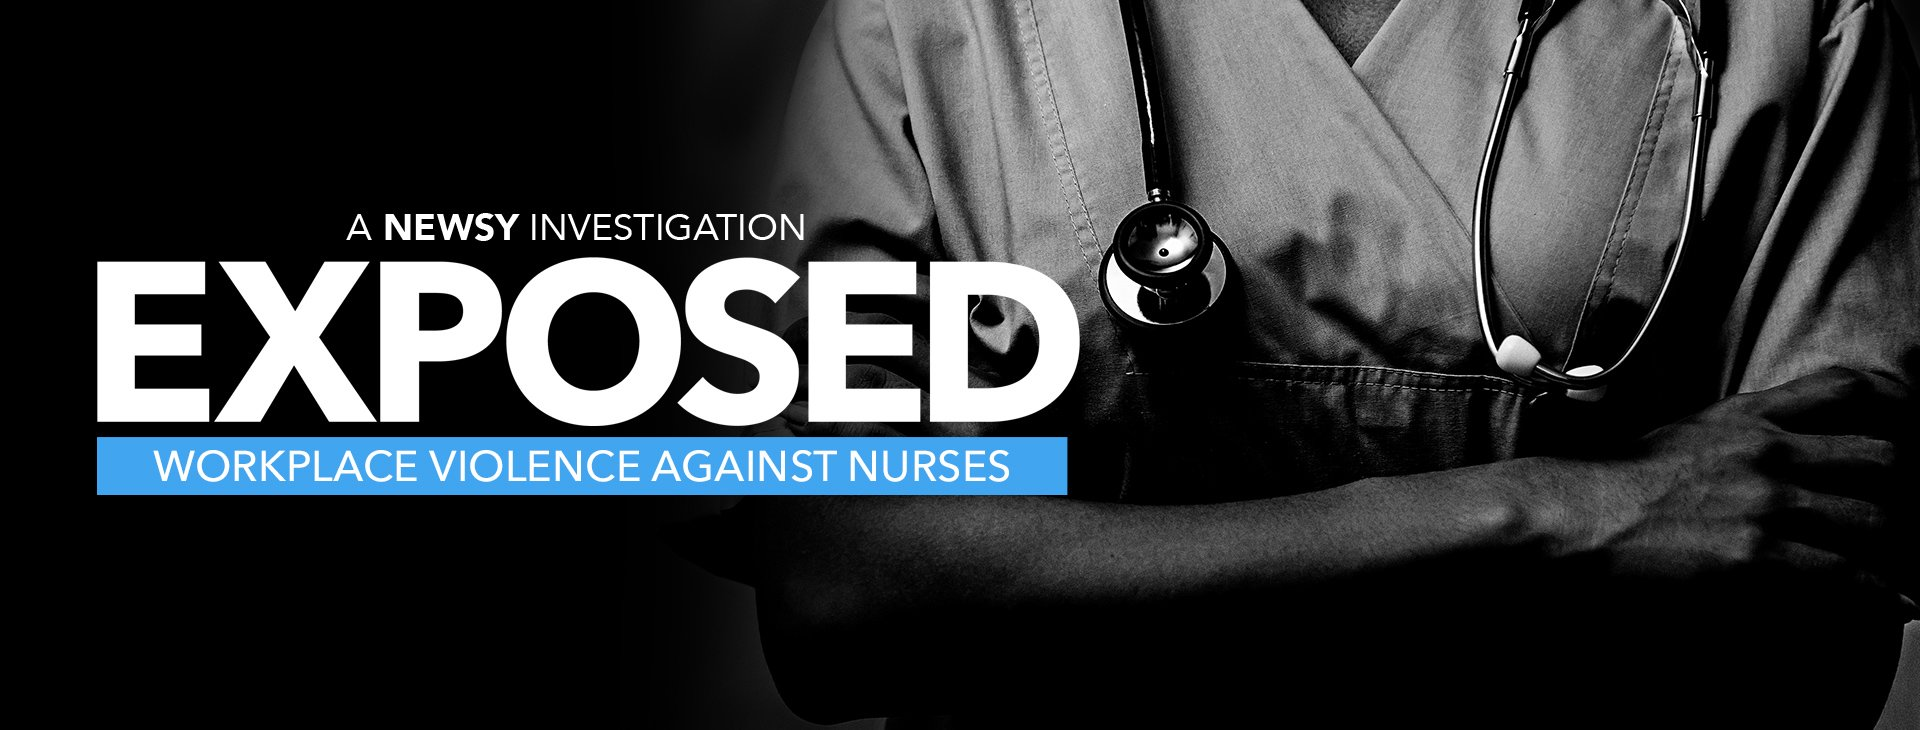 Exposed: Workplace Violence Against Nurses